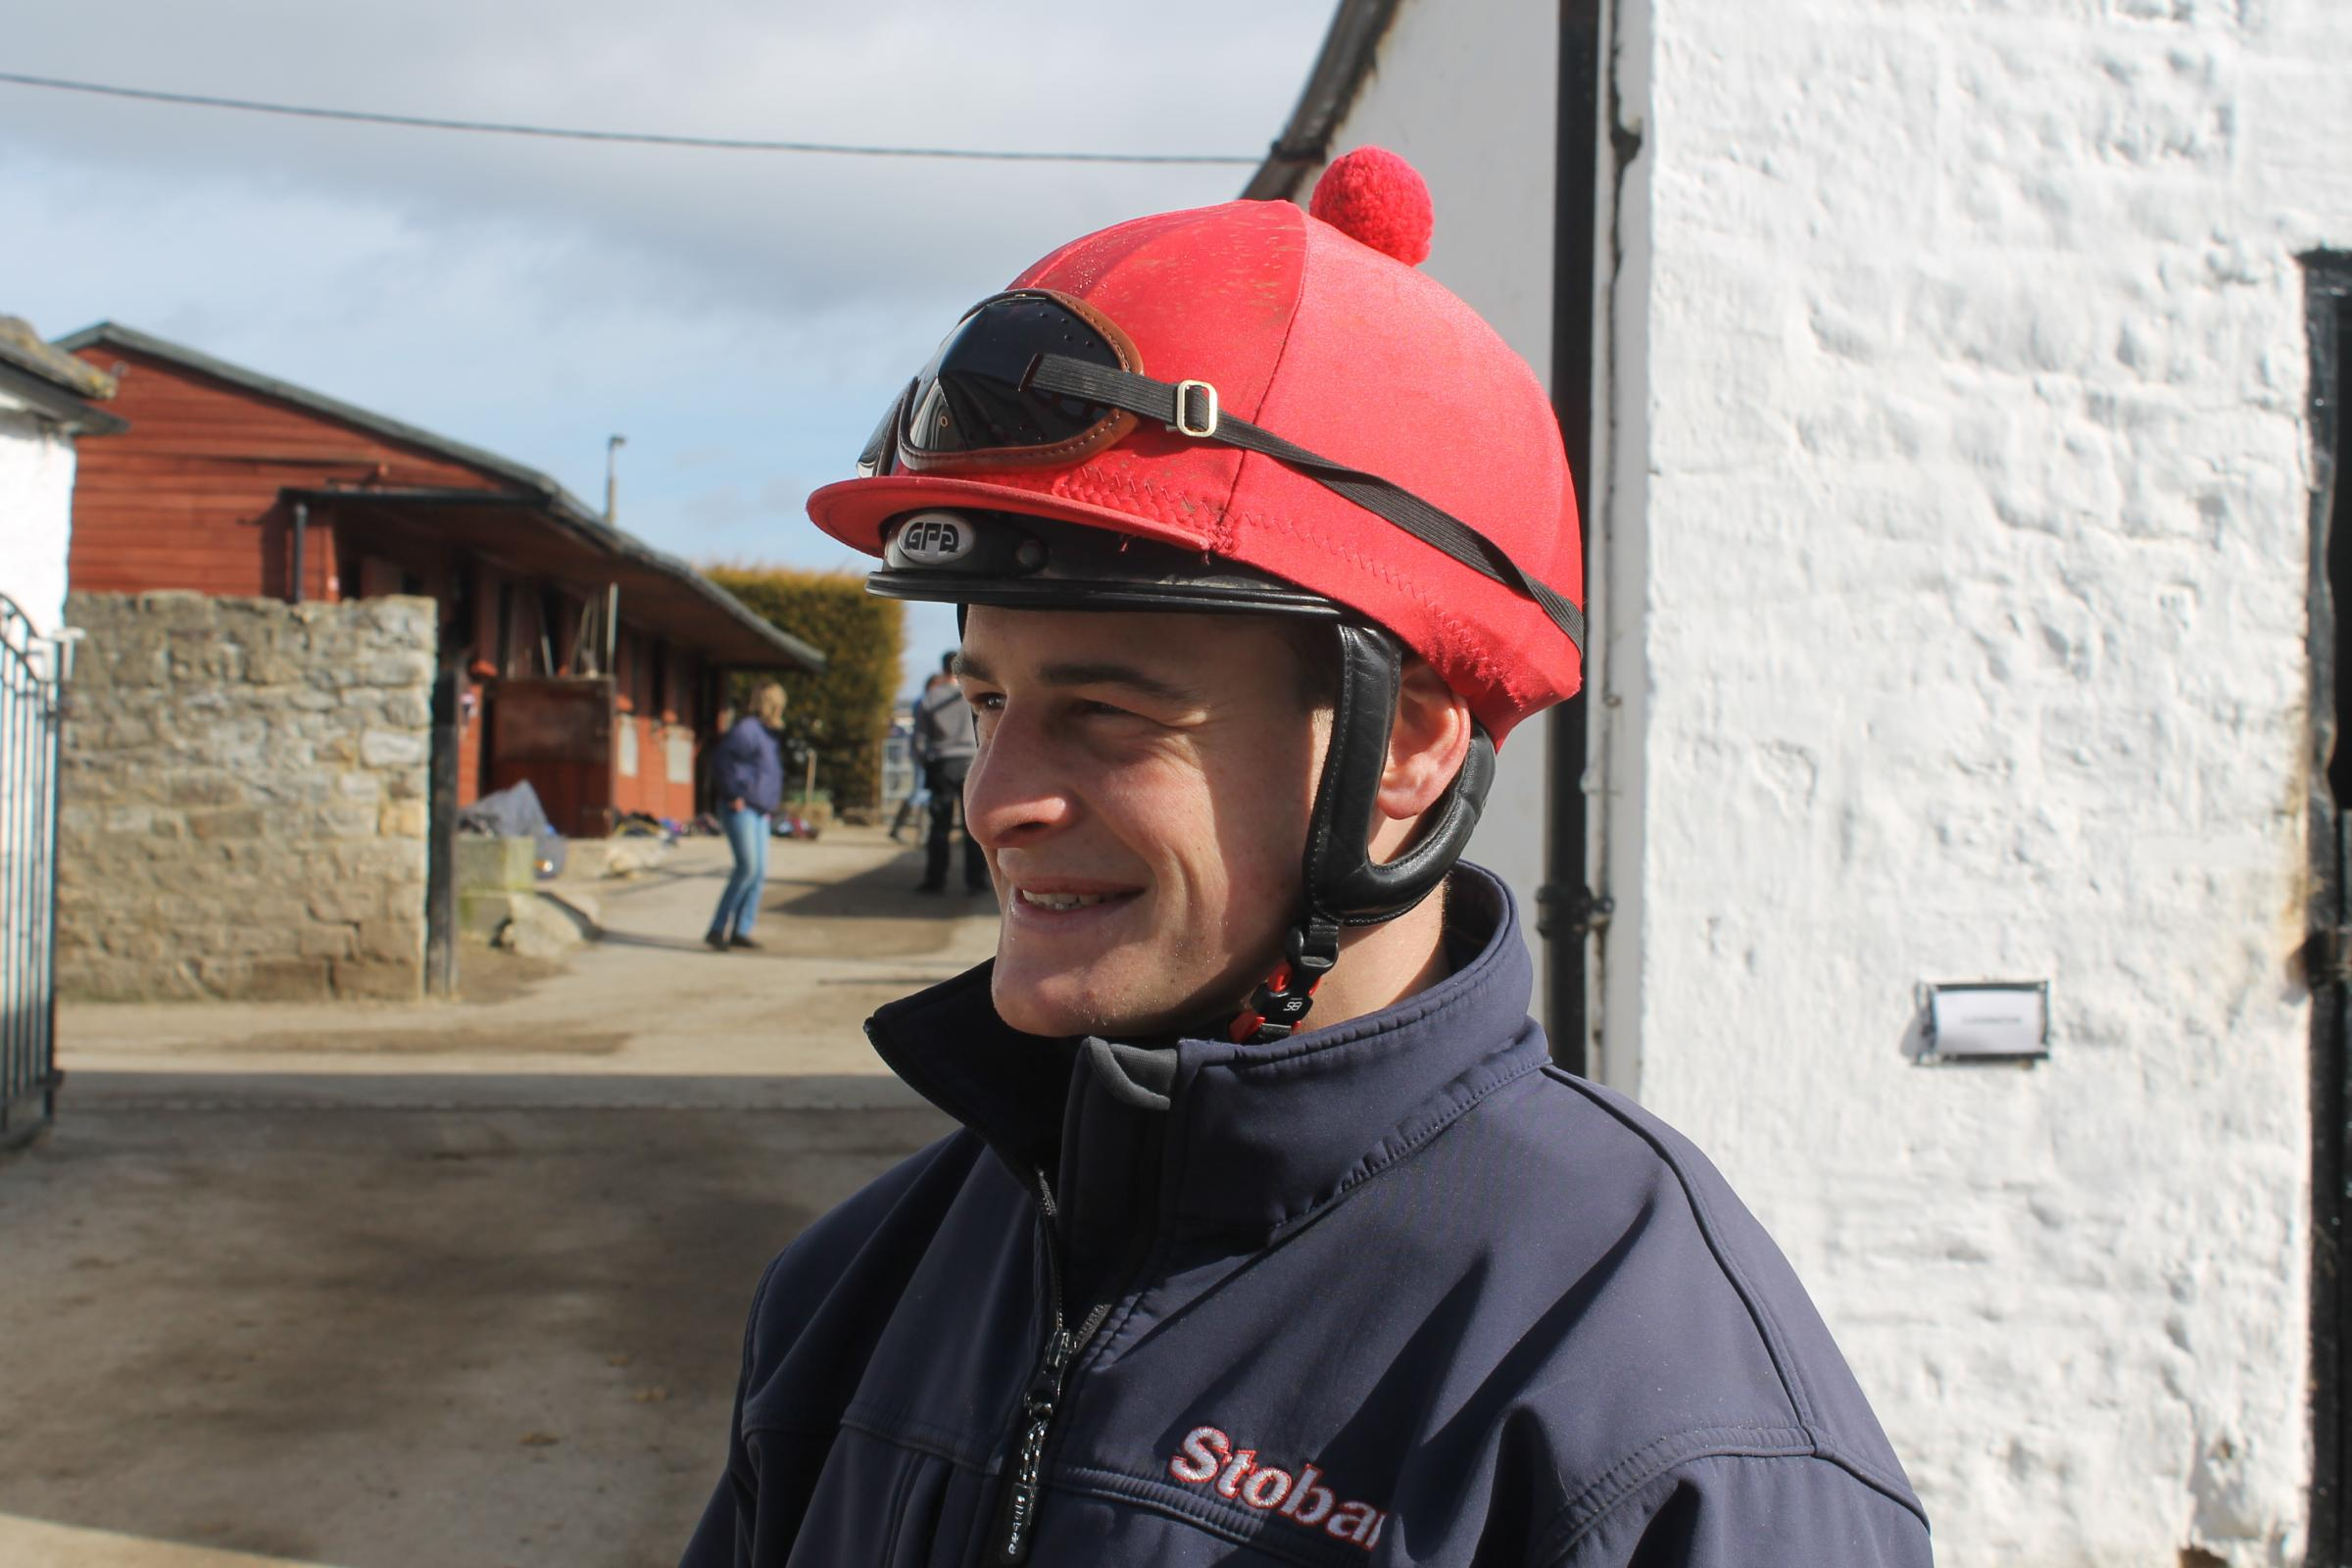 STELLAR SEASON: Callum Rodriguez has enjoyed a successful season riding out of Michael Dods' Denton Hall stable, with the 21-year-old having ridden out his claim to leave the apprentice ranks